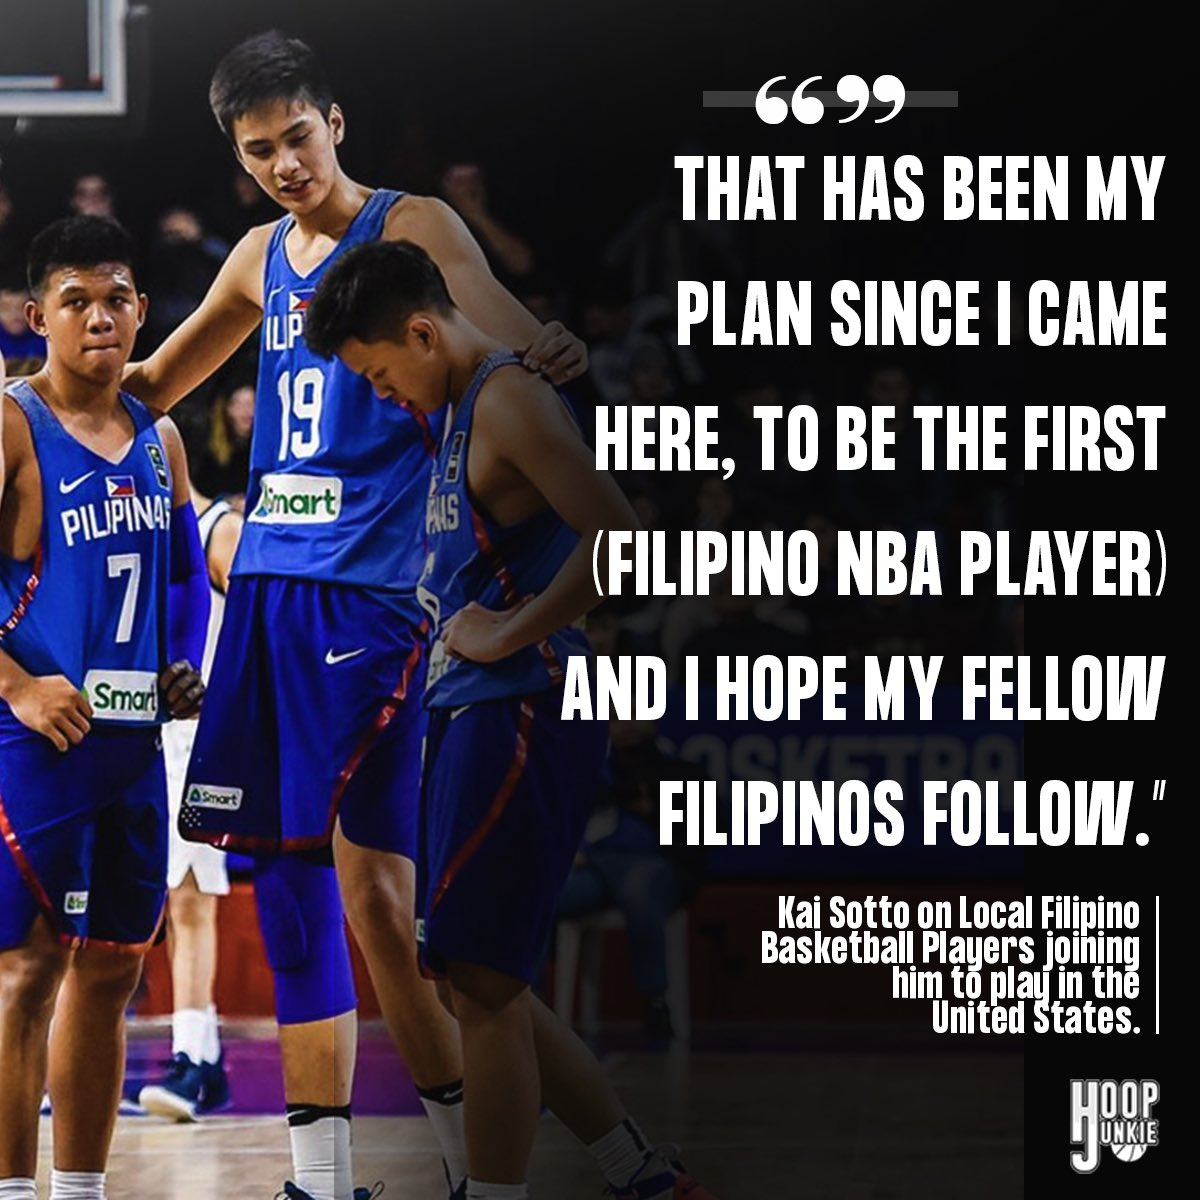 We're hoping for that too, Kai! 🇵🇭✈️ https://t.co/4FTeL1xmvi